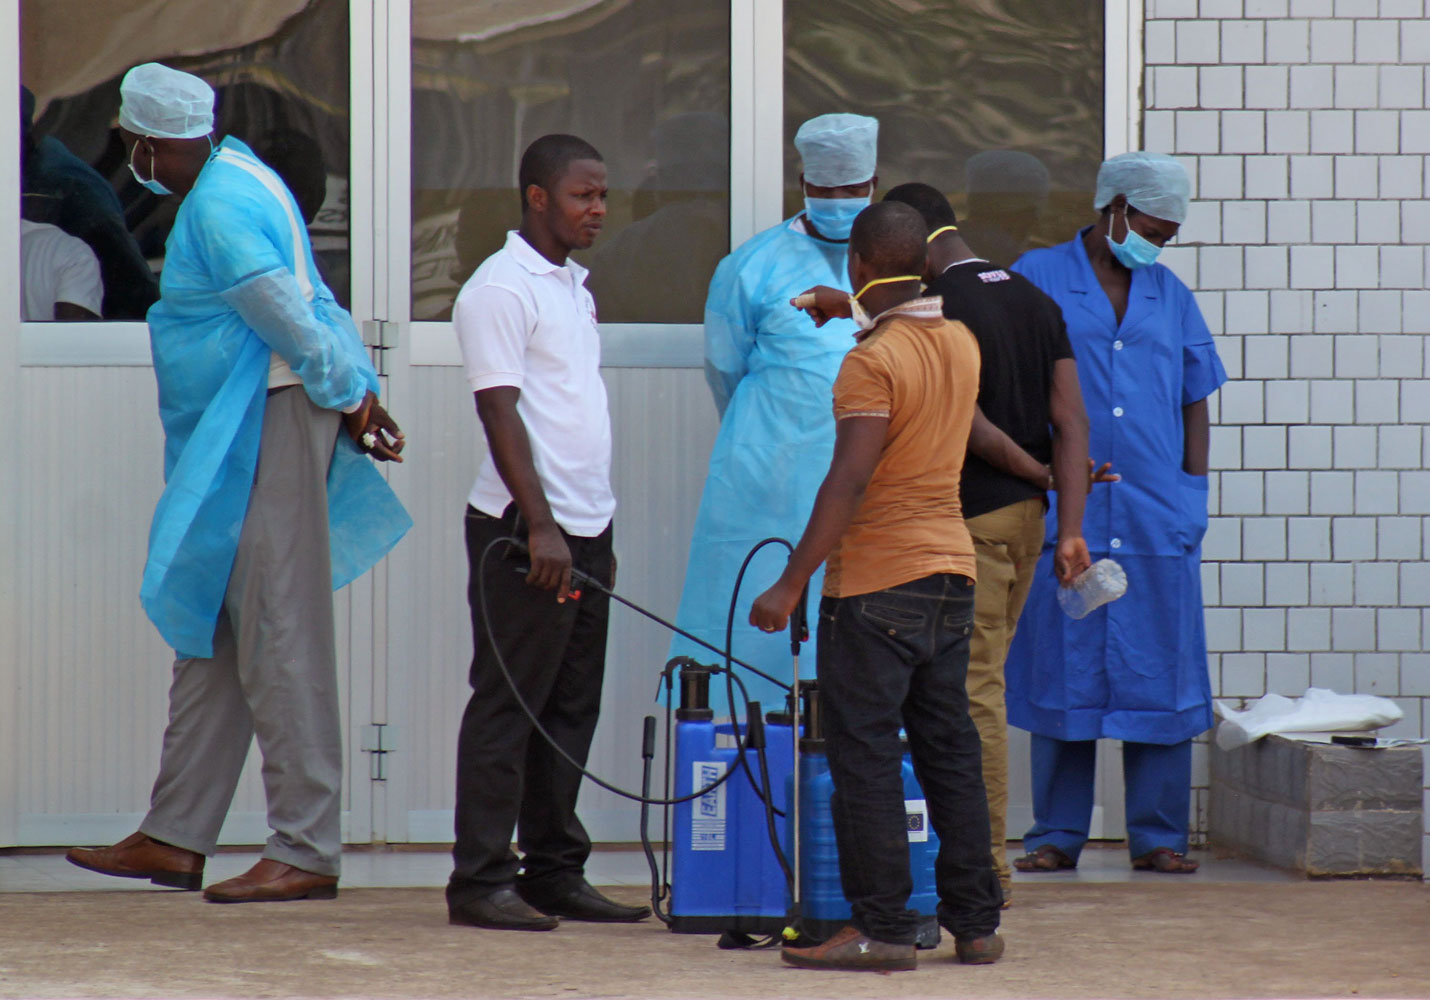 Medical personnel at the emergency entrance of a hospital receive suspected Ebola virus patients in Conakry, Guinea, March 29, 2014.